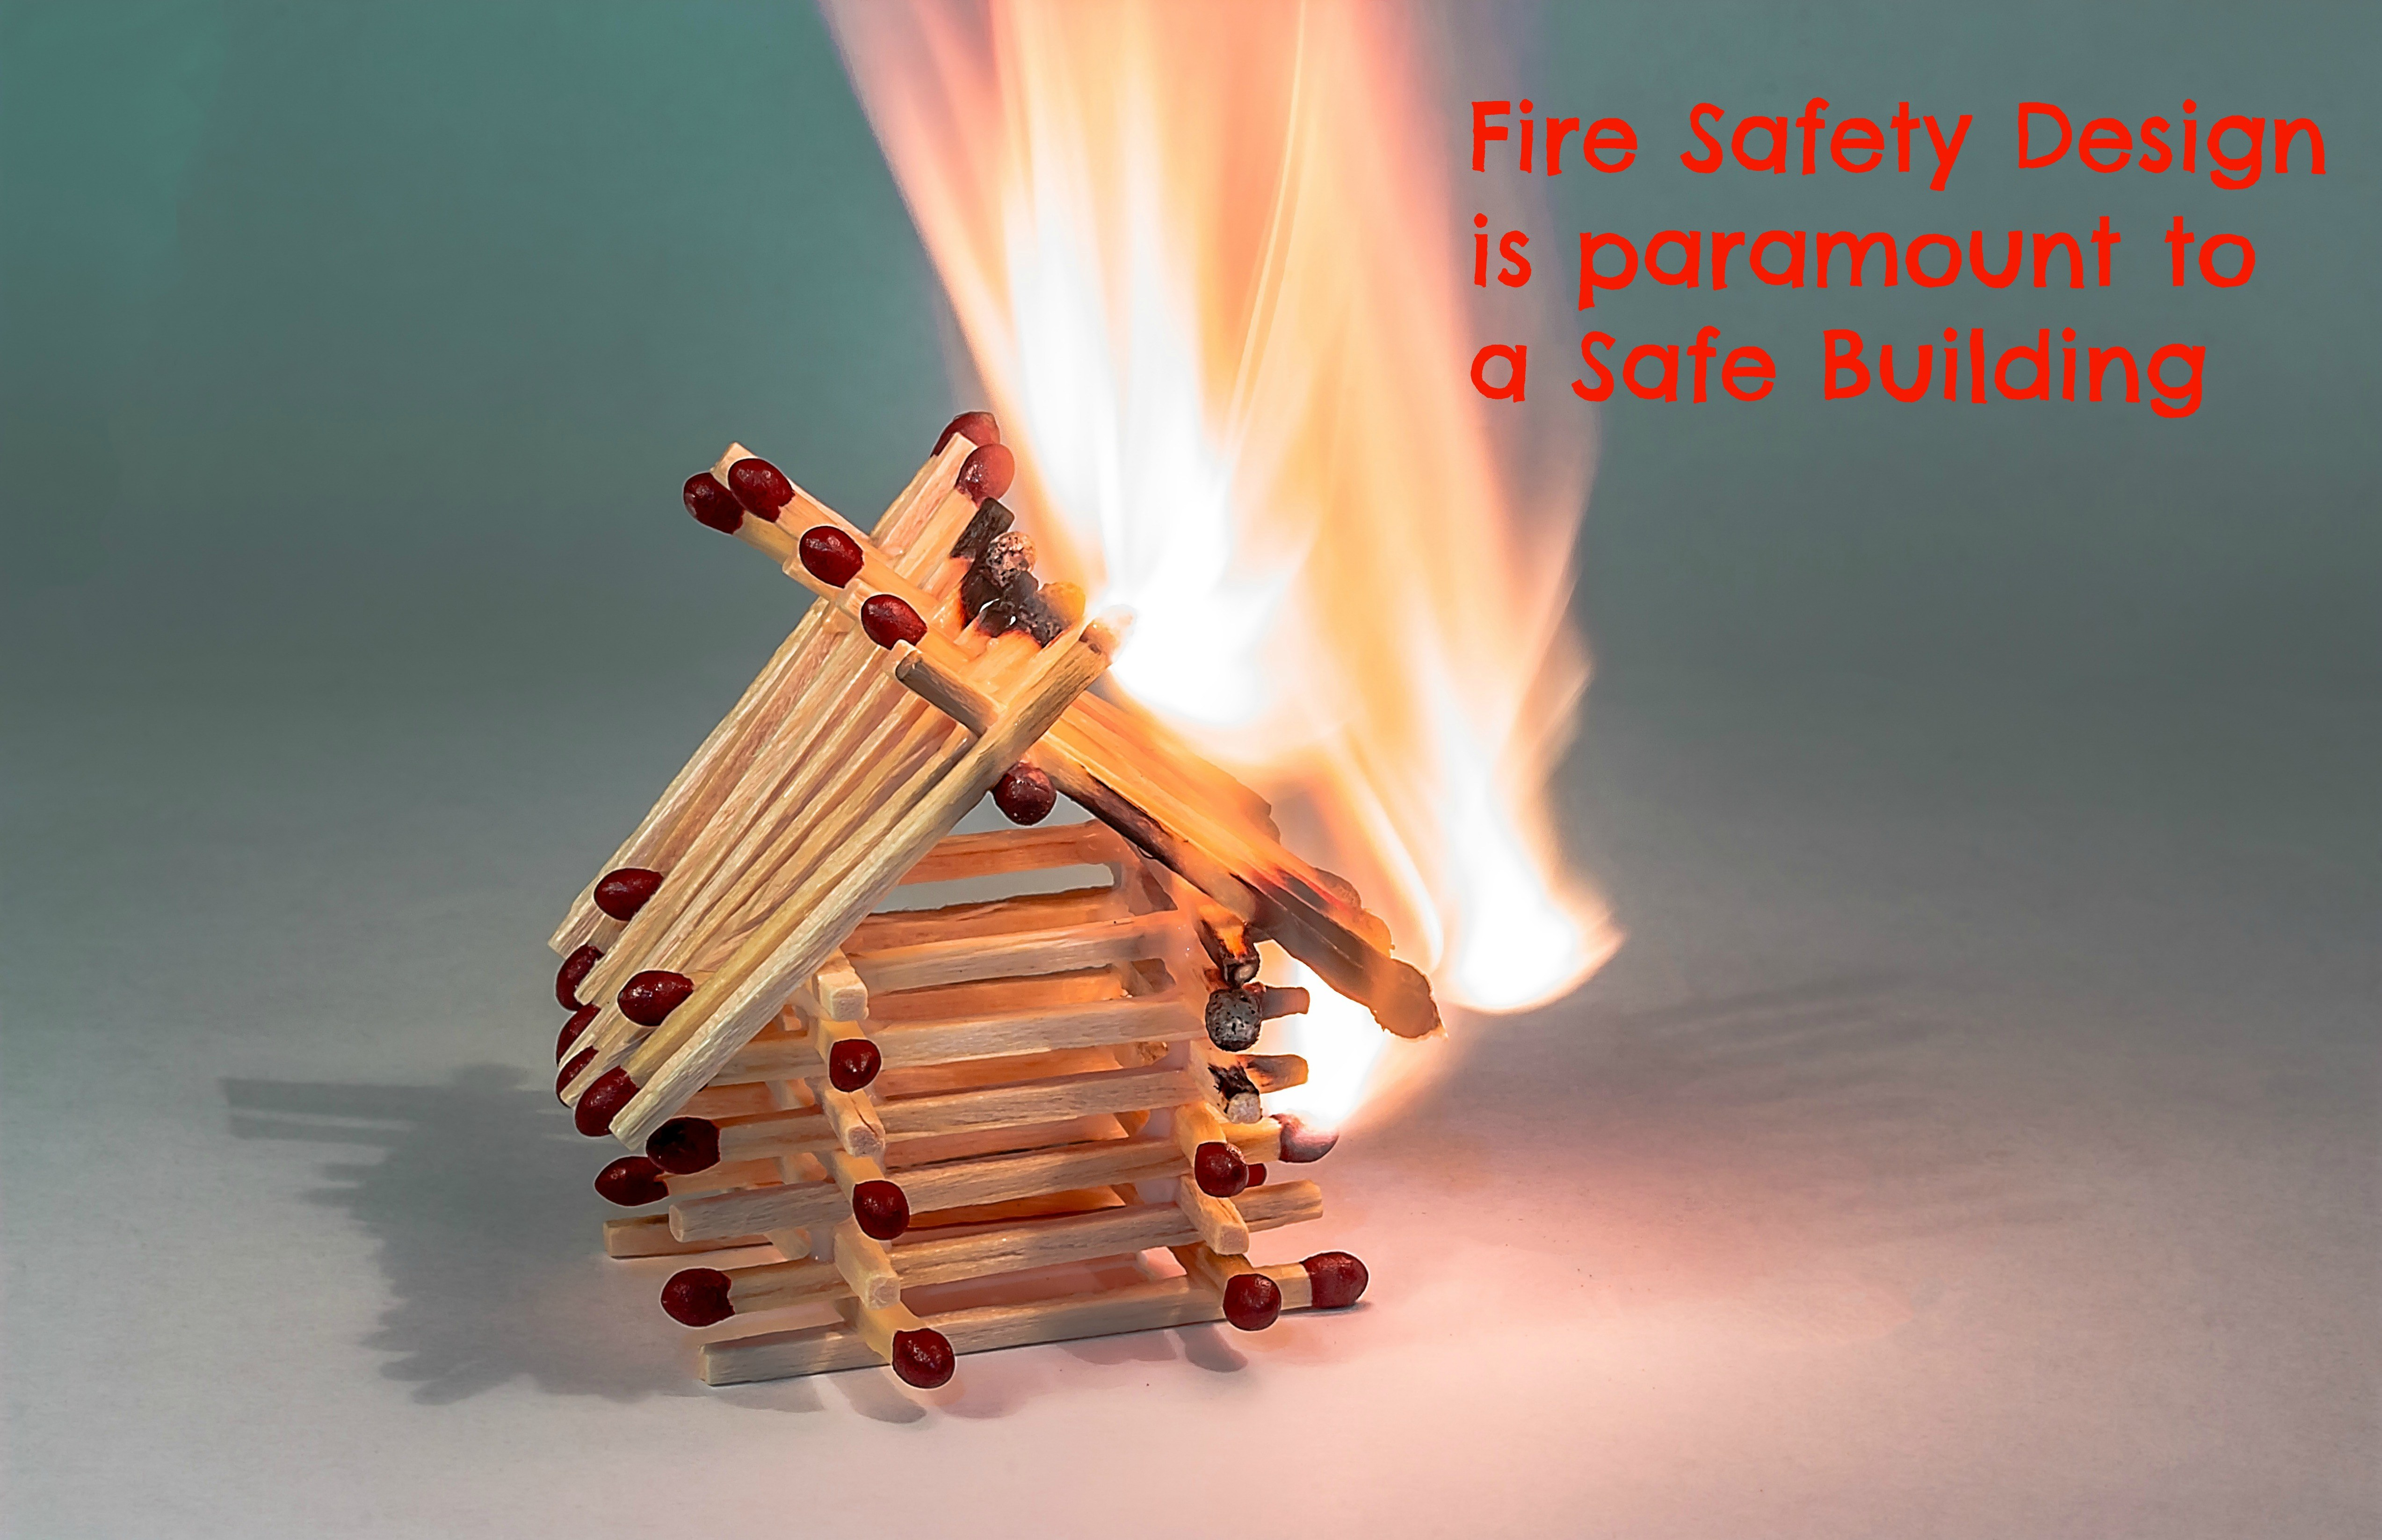 Building On Fire With Text Saying Fire Safety Design Is Paramount To A Safe Building